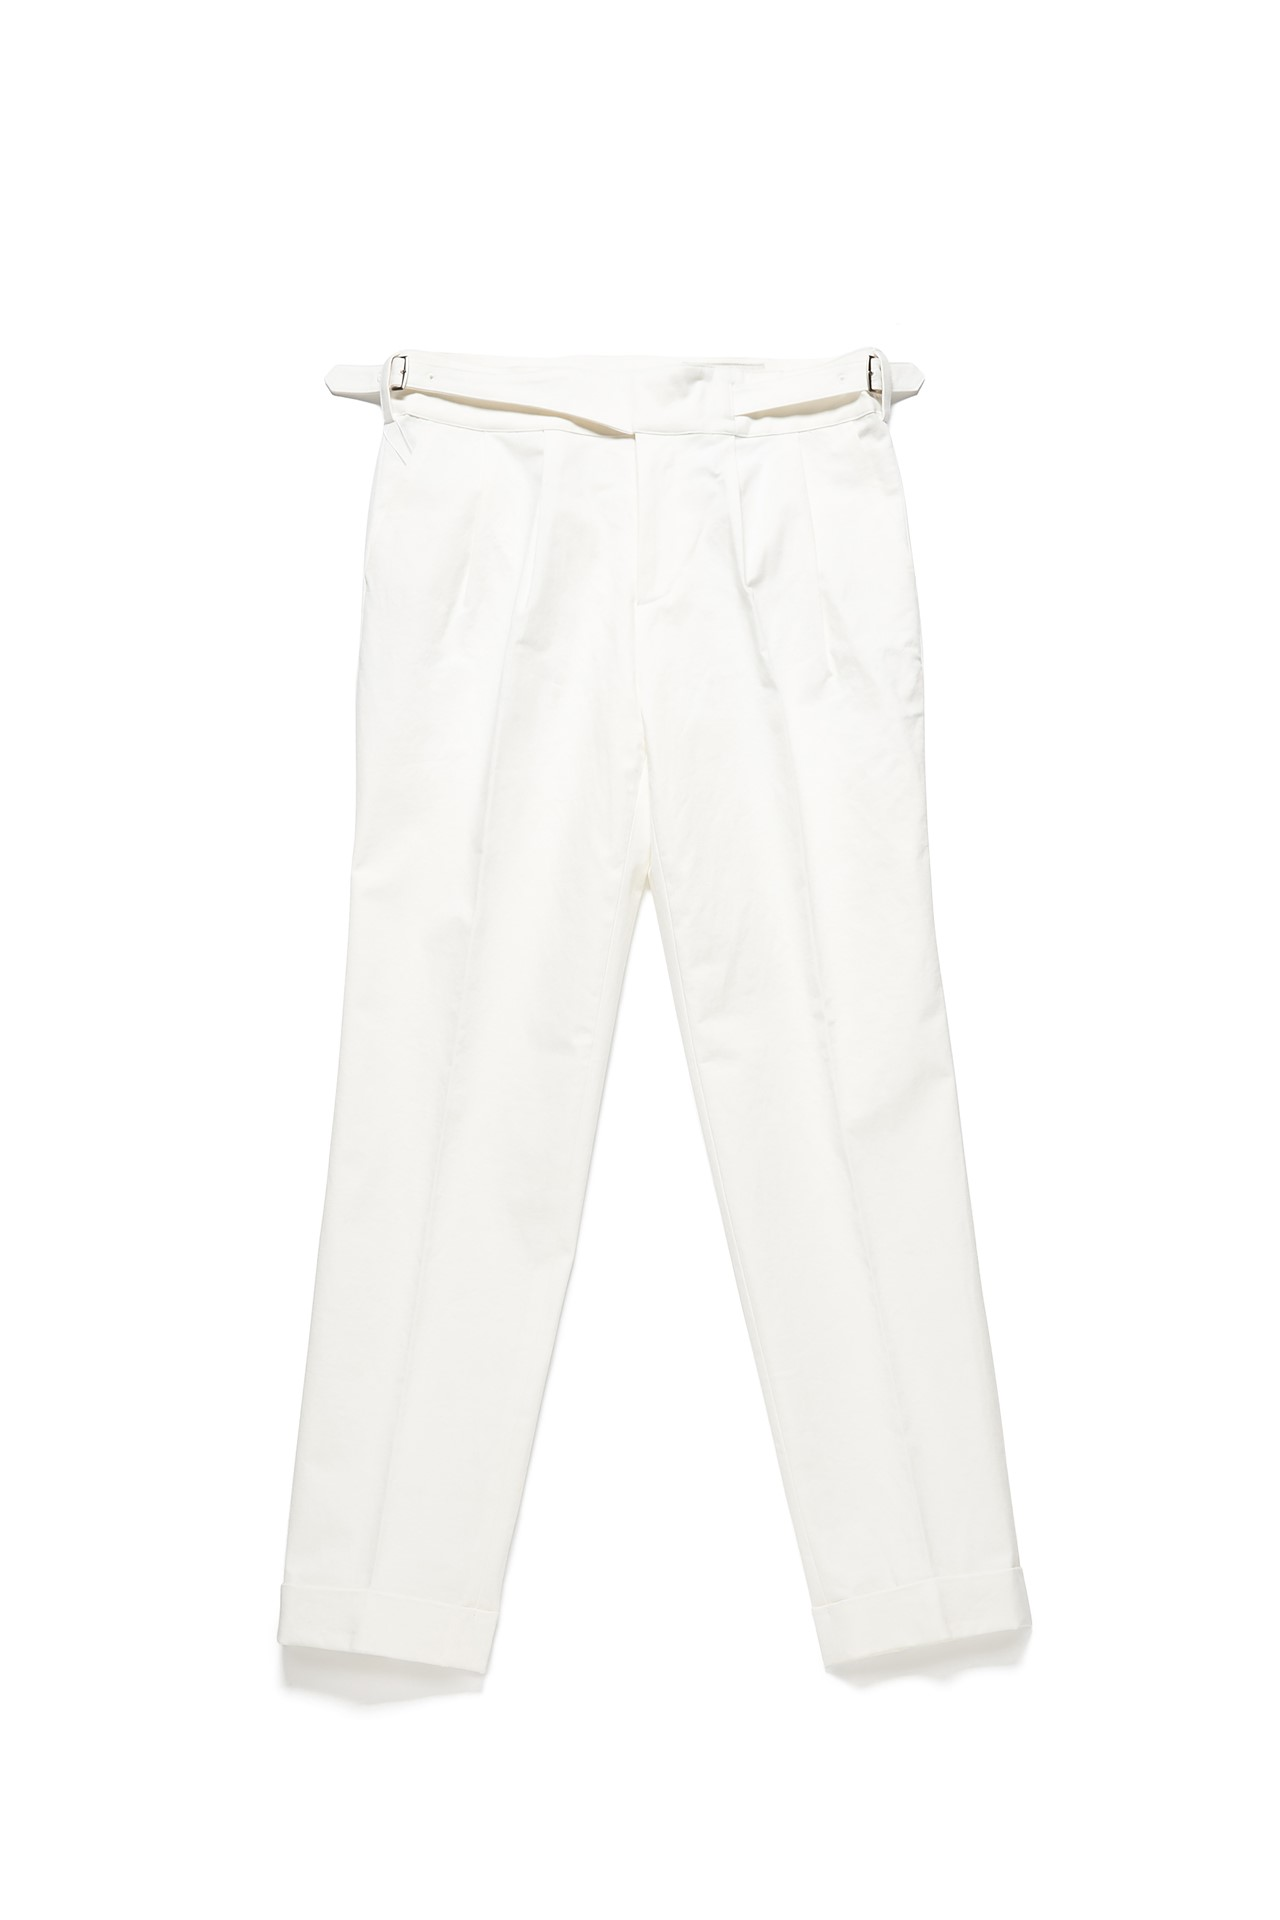 19 S/S ALL NEW GURKHA PANTS WHITEAMFEAST(암피스트)